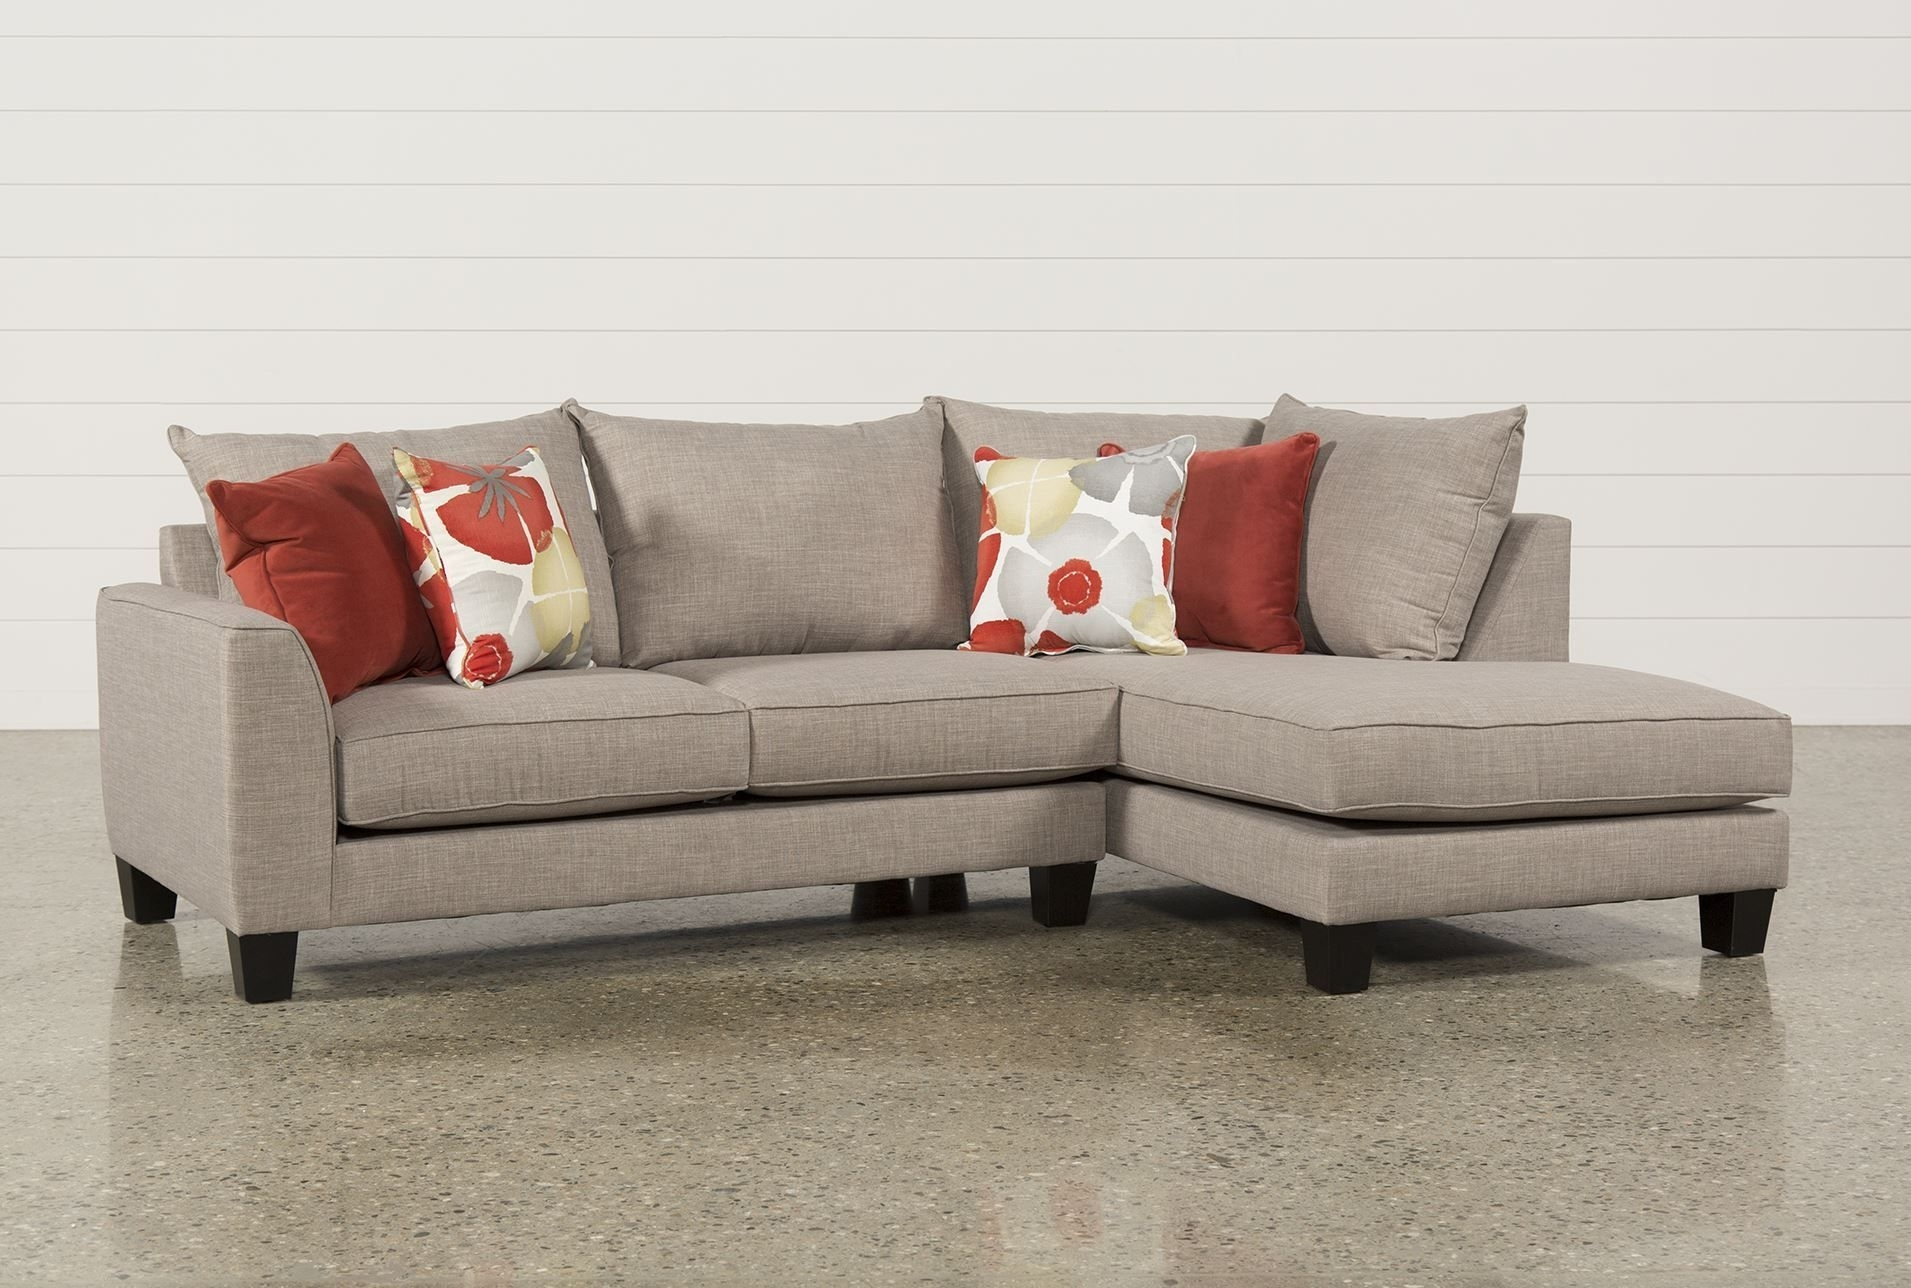 Kira 2 Piece Sectional W/raf Chaise | Home Nesting  Interior Design Intended For Delano 2 Piece Sectionals With Raf Oversized Chaise (Image 18 of 25)